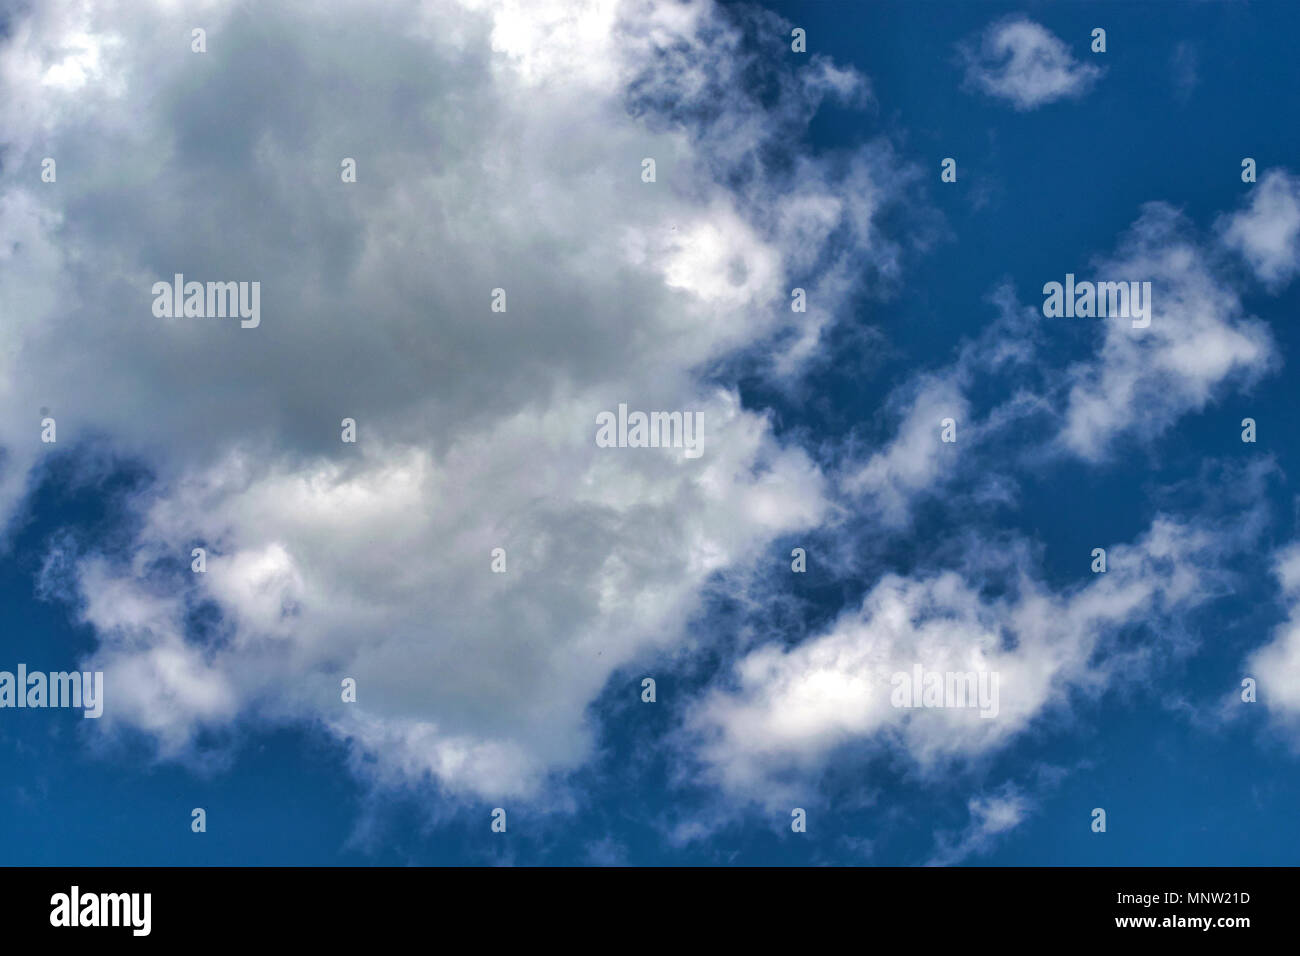 White fluffy clouds in the vast blue sky. Abstract nature background. Close-up. - Stock Image